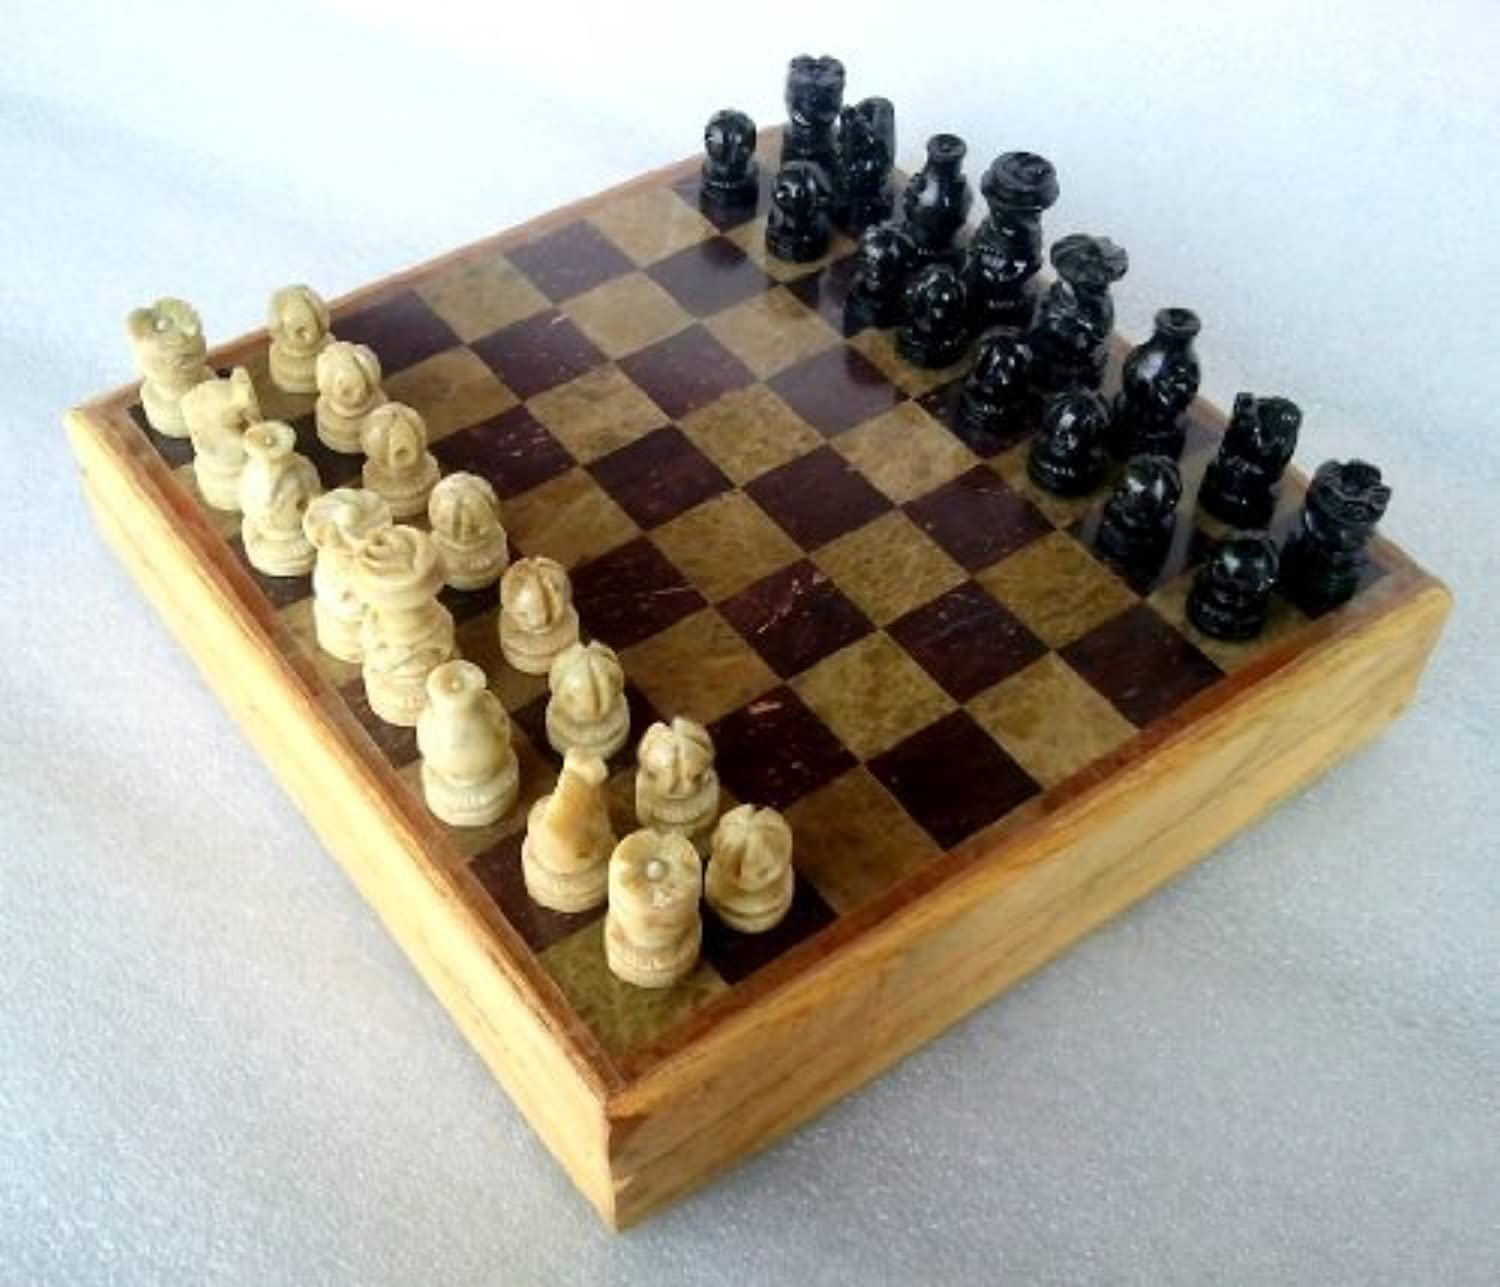 8x8 indian stone chess game board set hand crafted for Hand crafted chess set